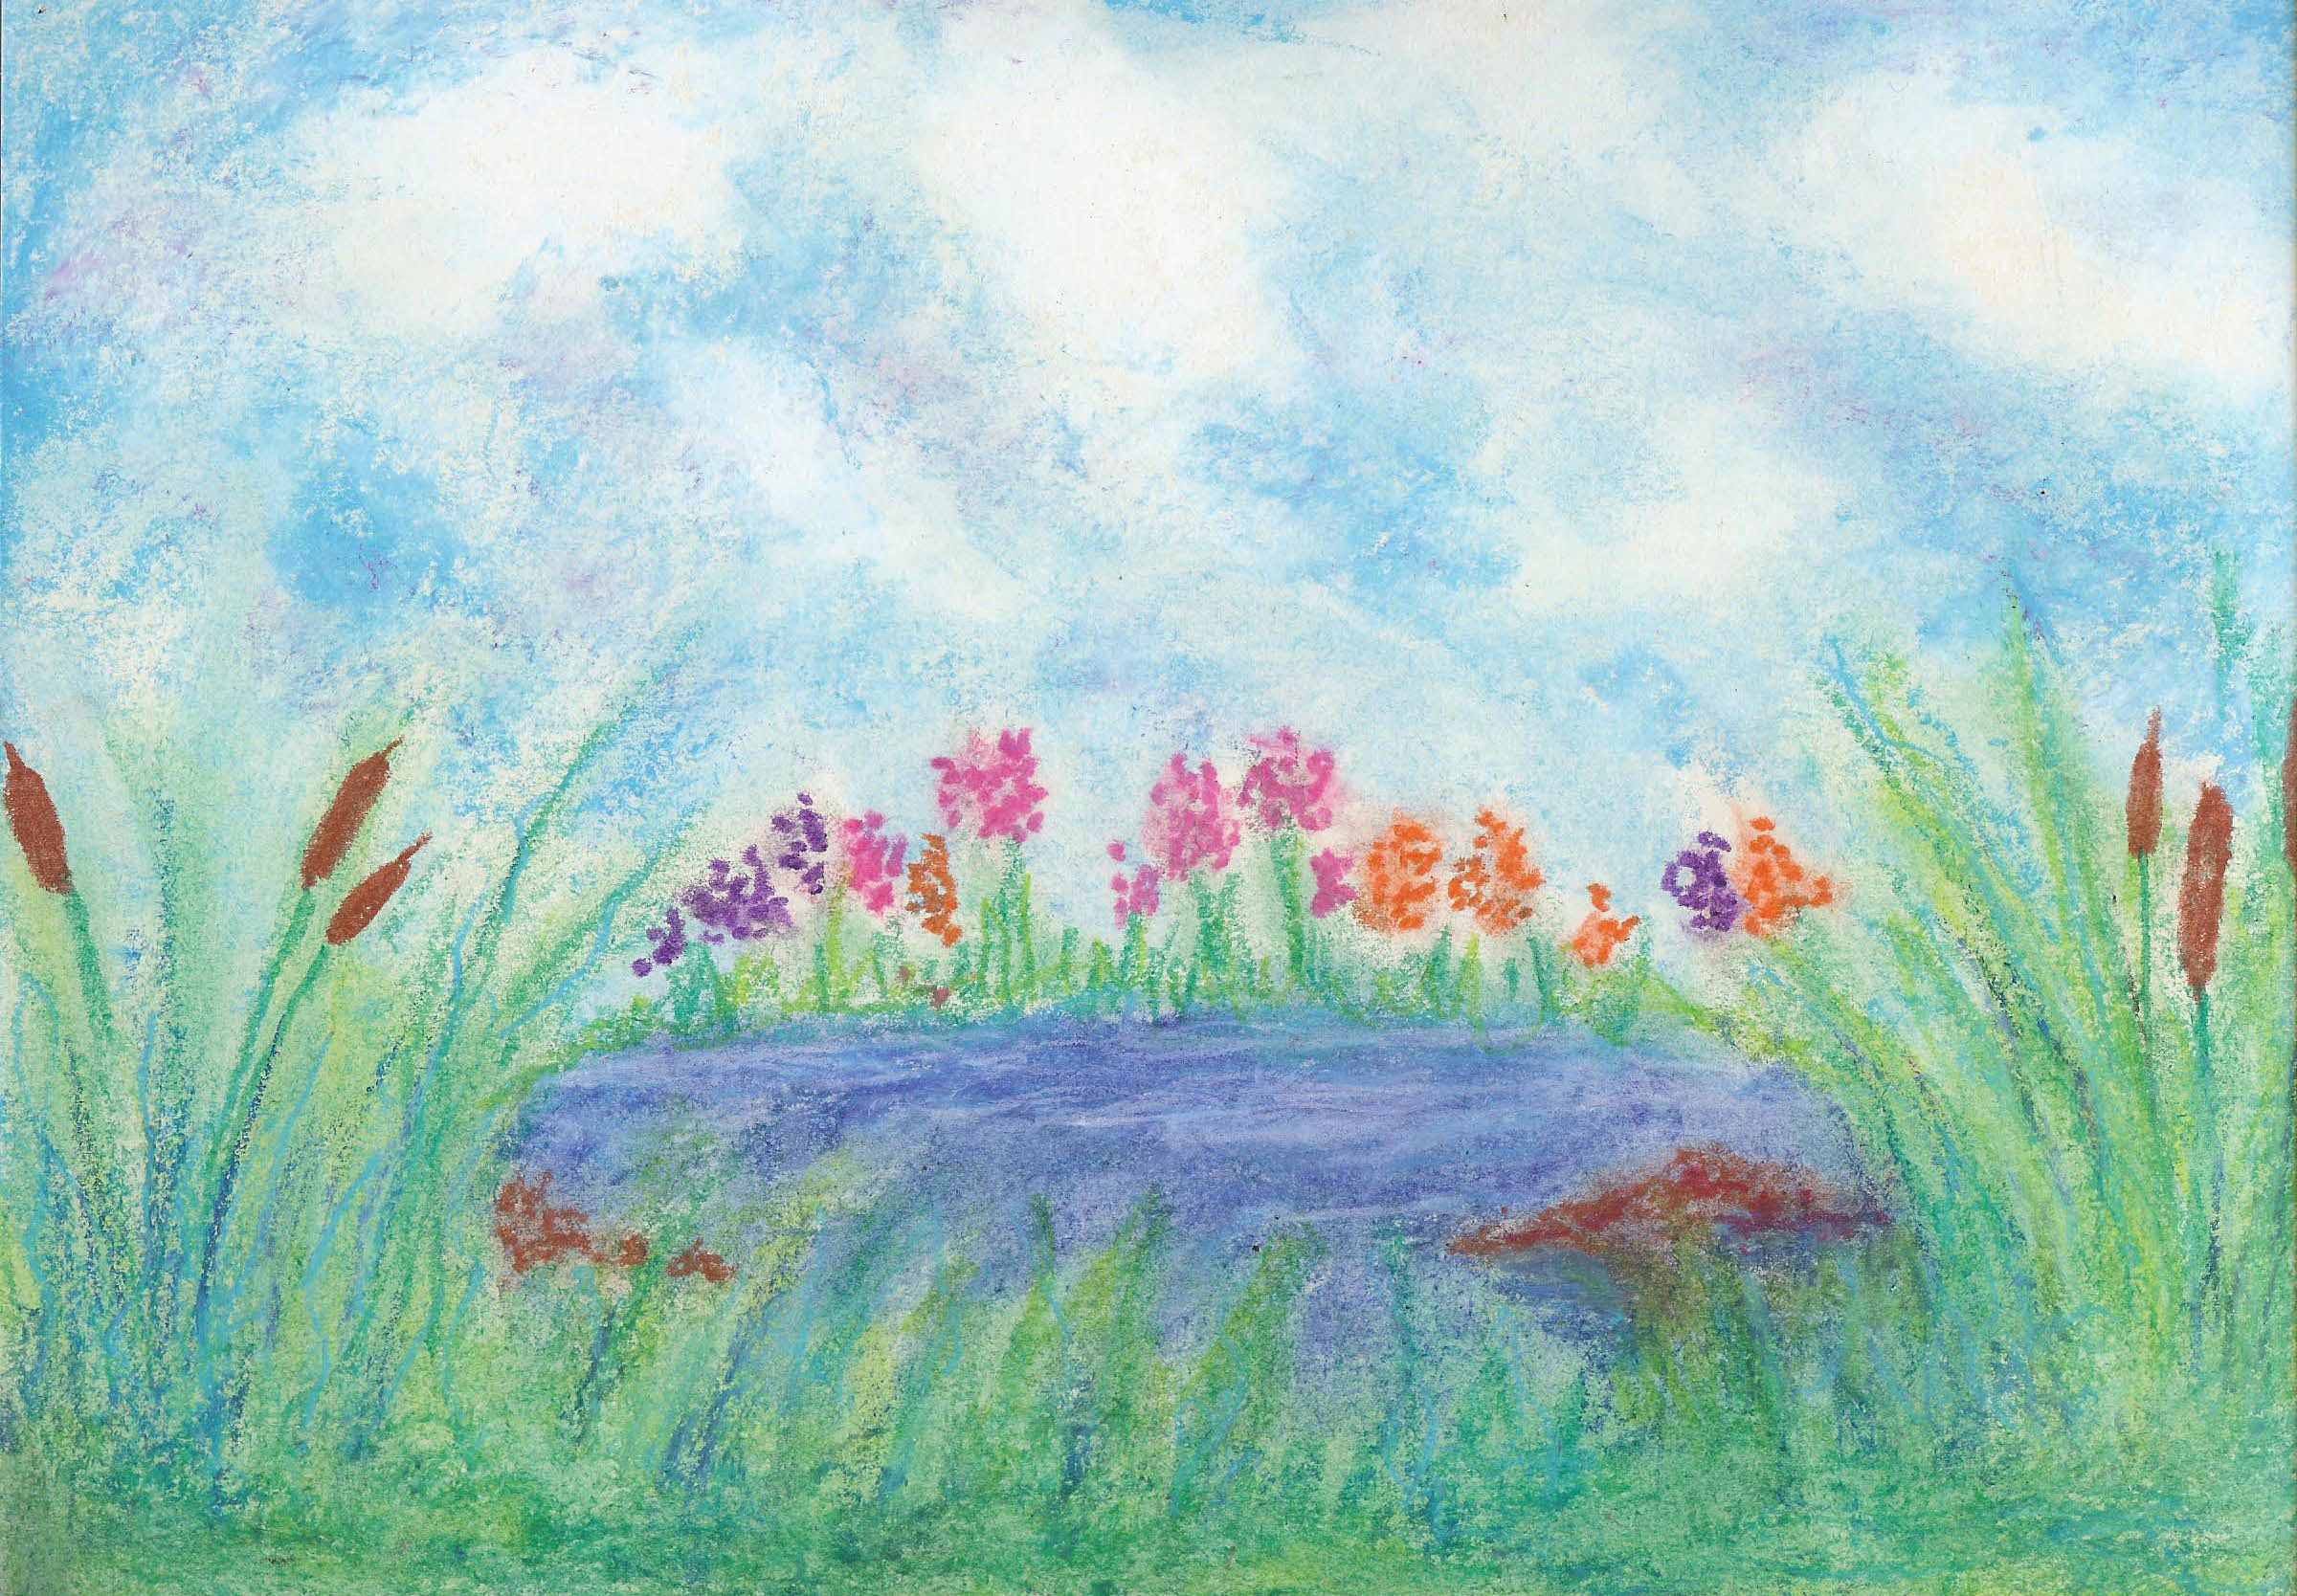 By the Pond - Oil Pastel 8 X 12 - $95